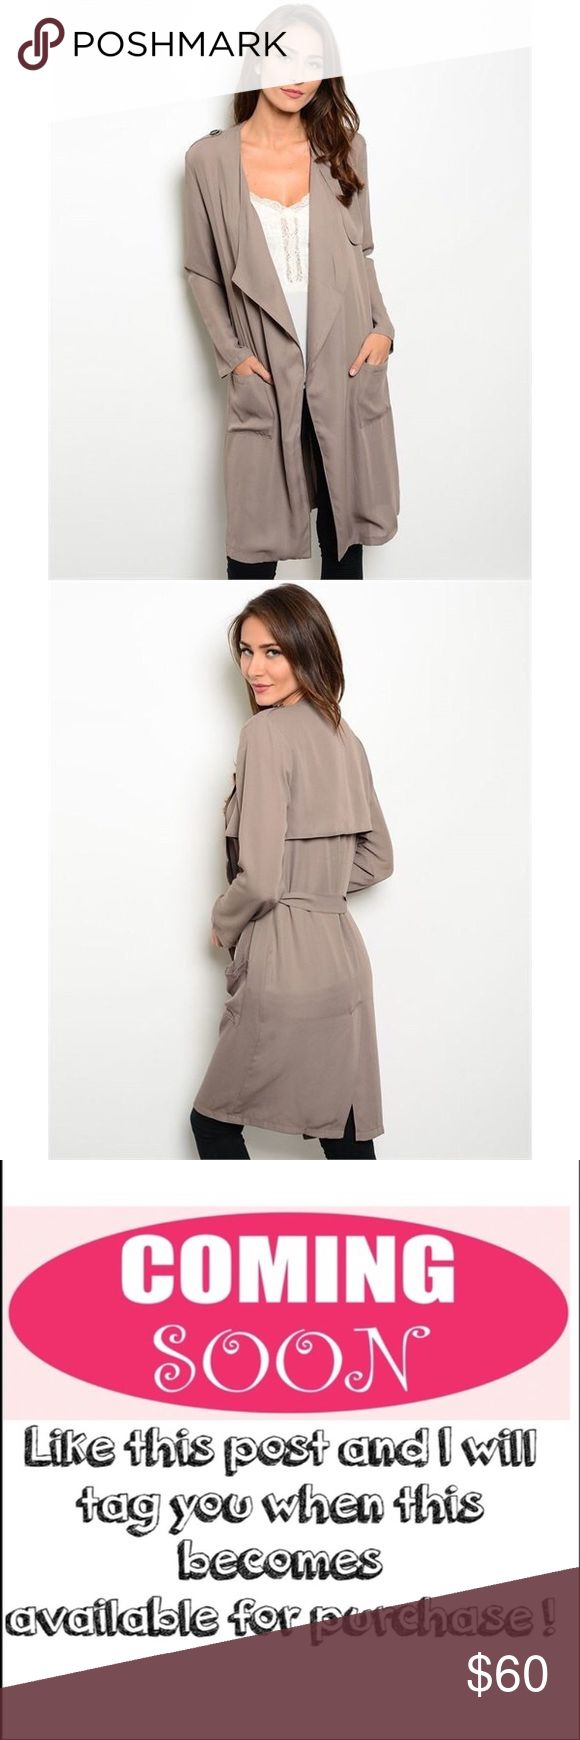 "Like this for a tag when it's available ! Pre-order this item now to receive a hold with free shipping when it comes in! I will tag you when it's in. Lightweight trench coat features pockets, open waterfall front and self-tie waist sash.Fabric Content: 100% POLYESTER. measurements for a size small: L: 38"" B: 22"" W: 20"". ONLY CONSIDERING OFFERS THROUGH THE ""OFFER"" BUTTON. No trades, no off App transactions. Any questions can be addressed below. Available: 2 Small, 2 Medium, 2 Large. Jackets…"